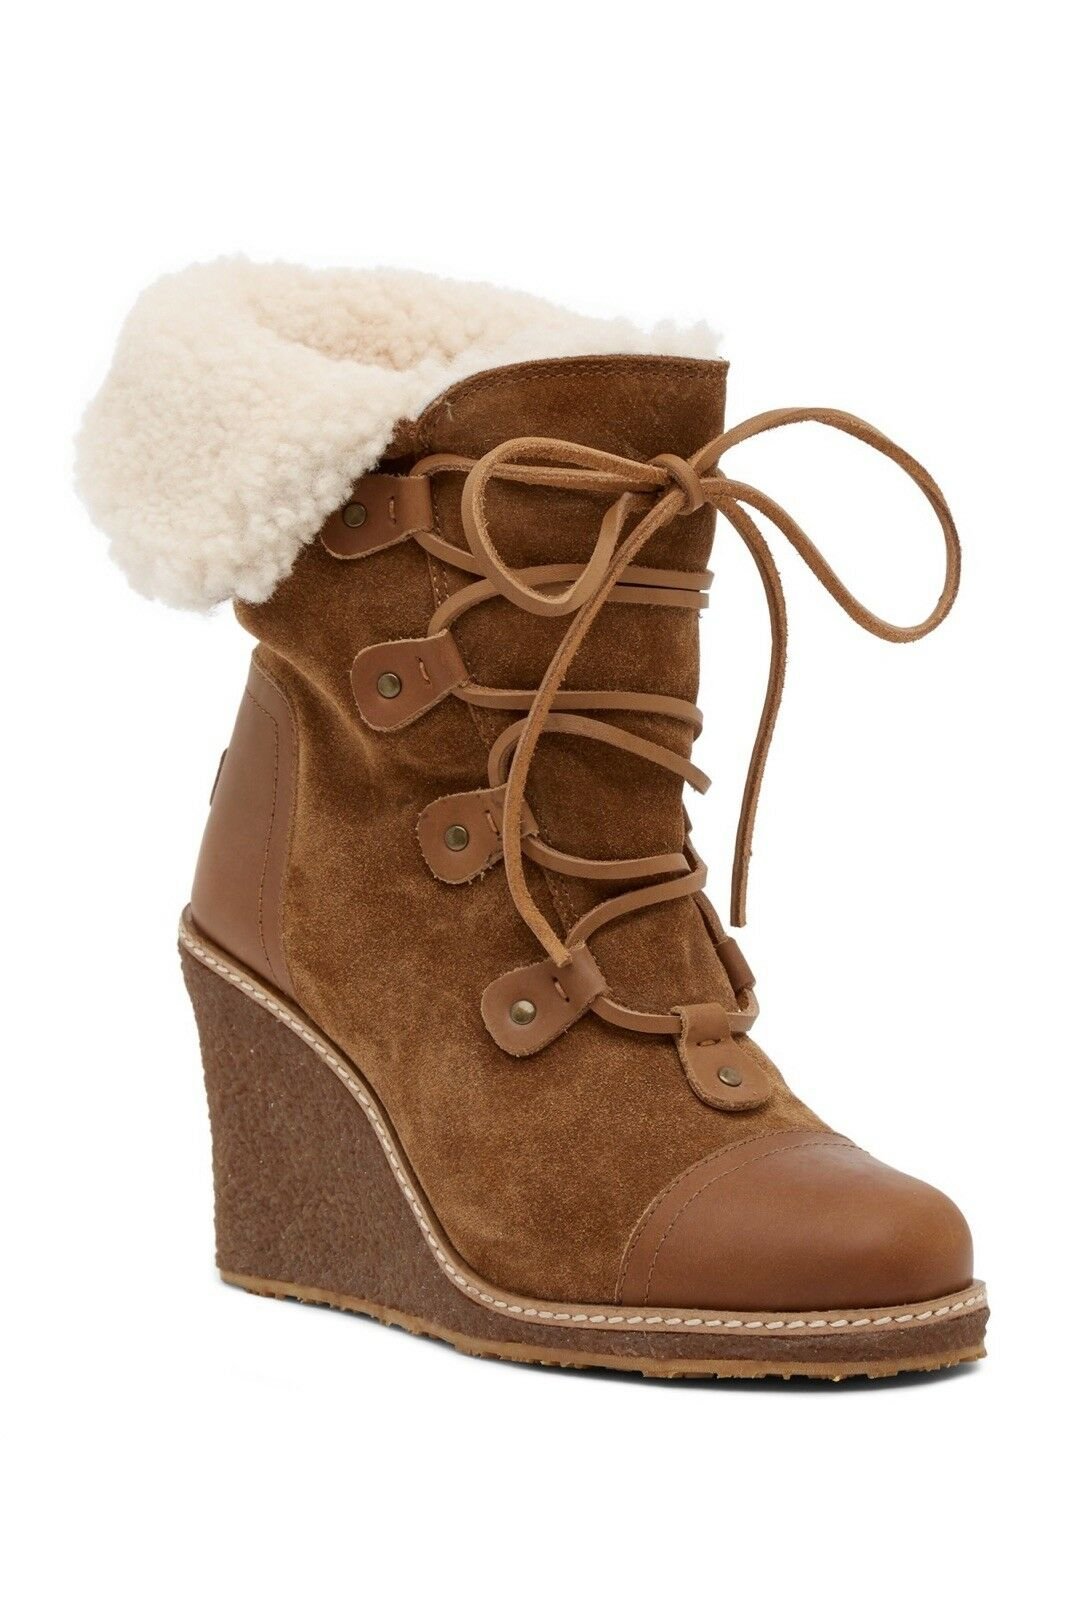 335 NEW Australia Luxe Collective Mona Genuine Shearling Wedge Boot Chestnut 10